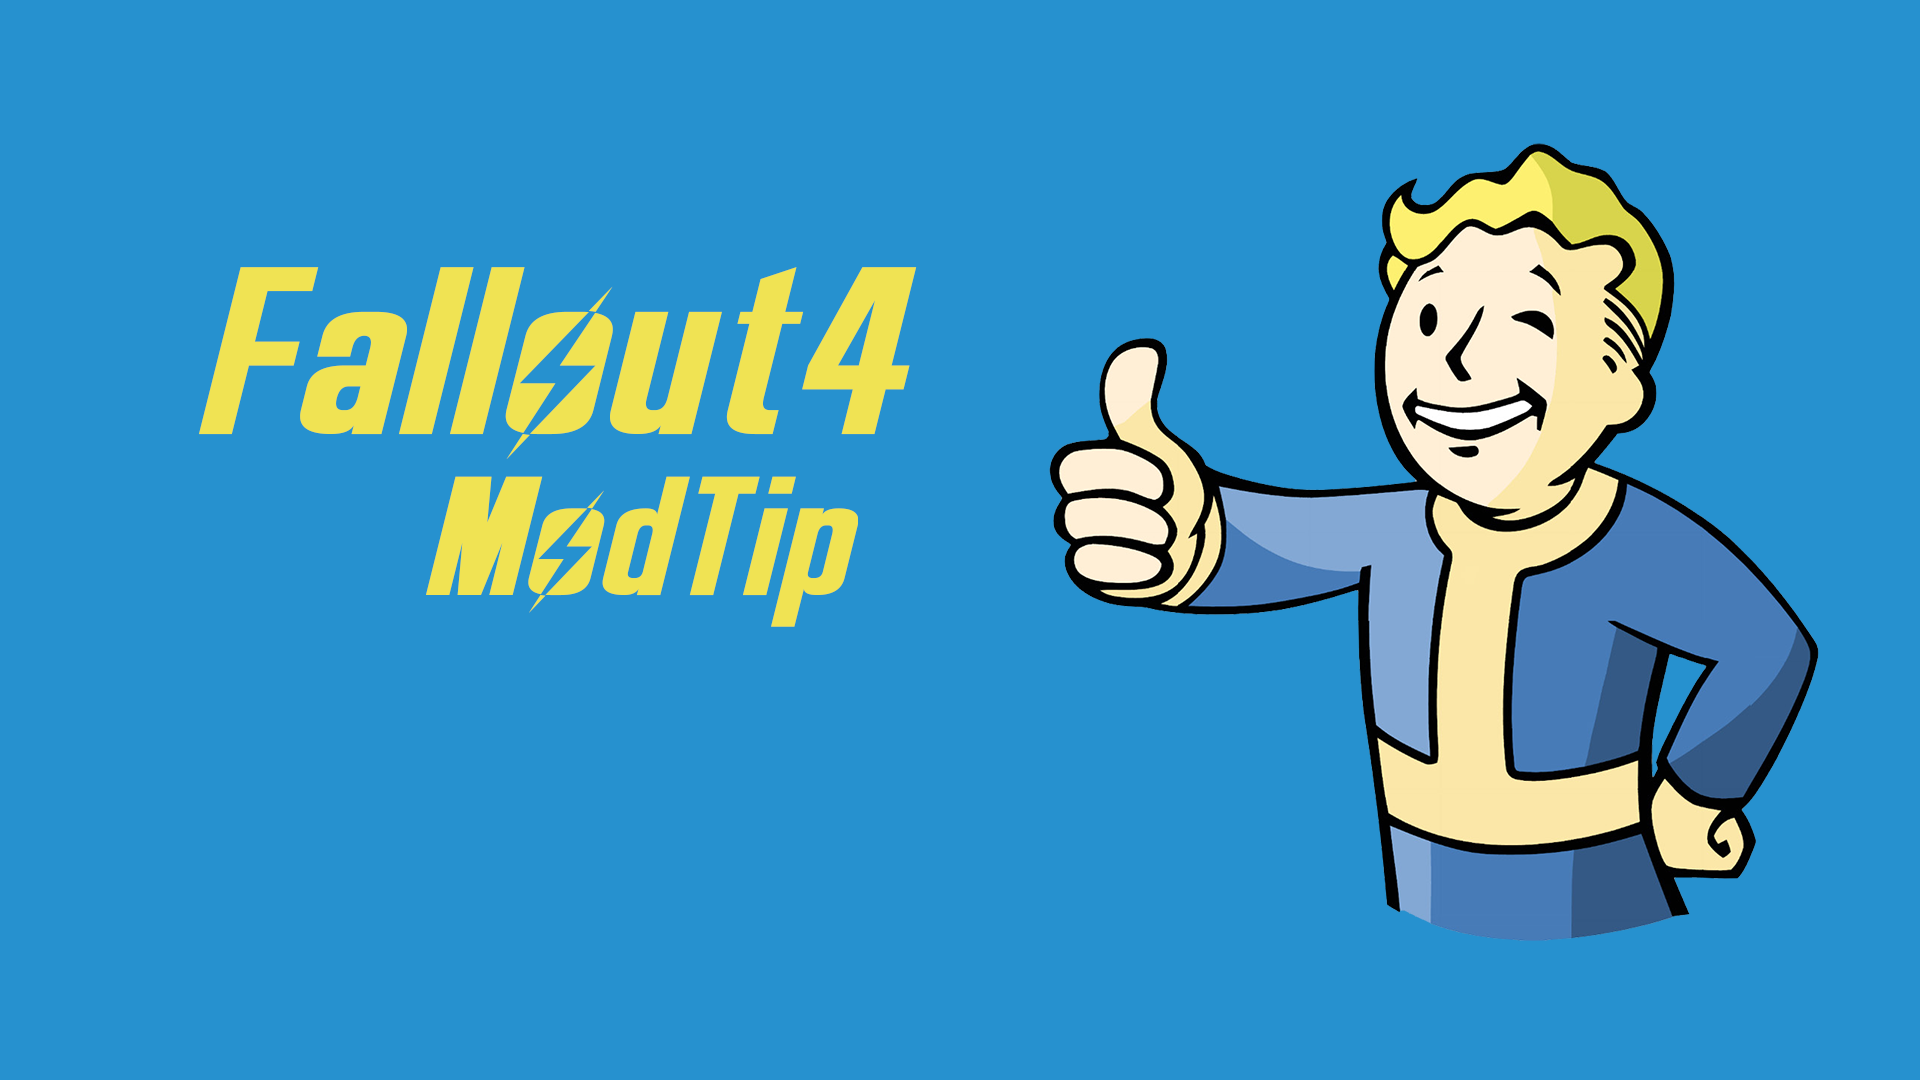 Fallout4-MODTIP: DEF_UI使ってる方向け